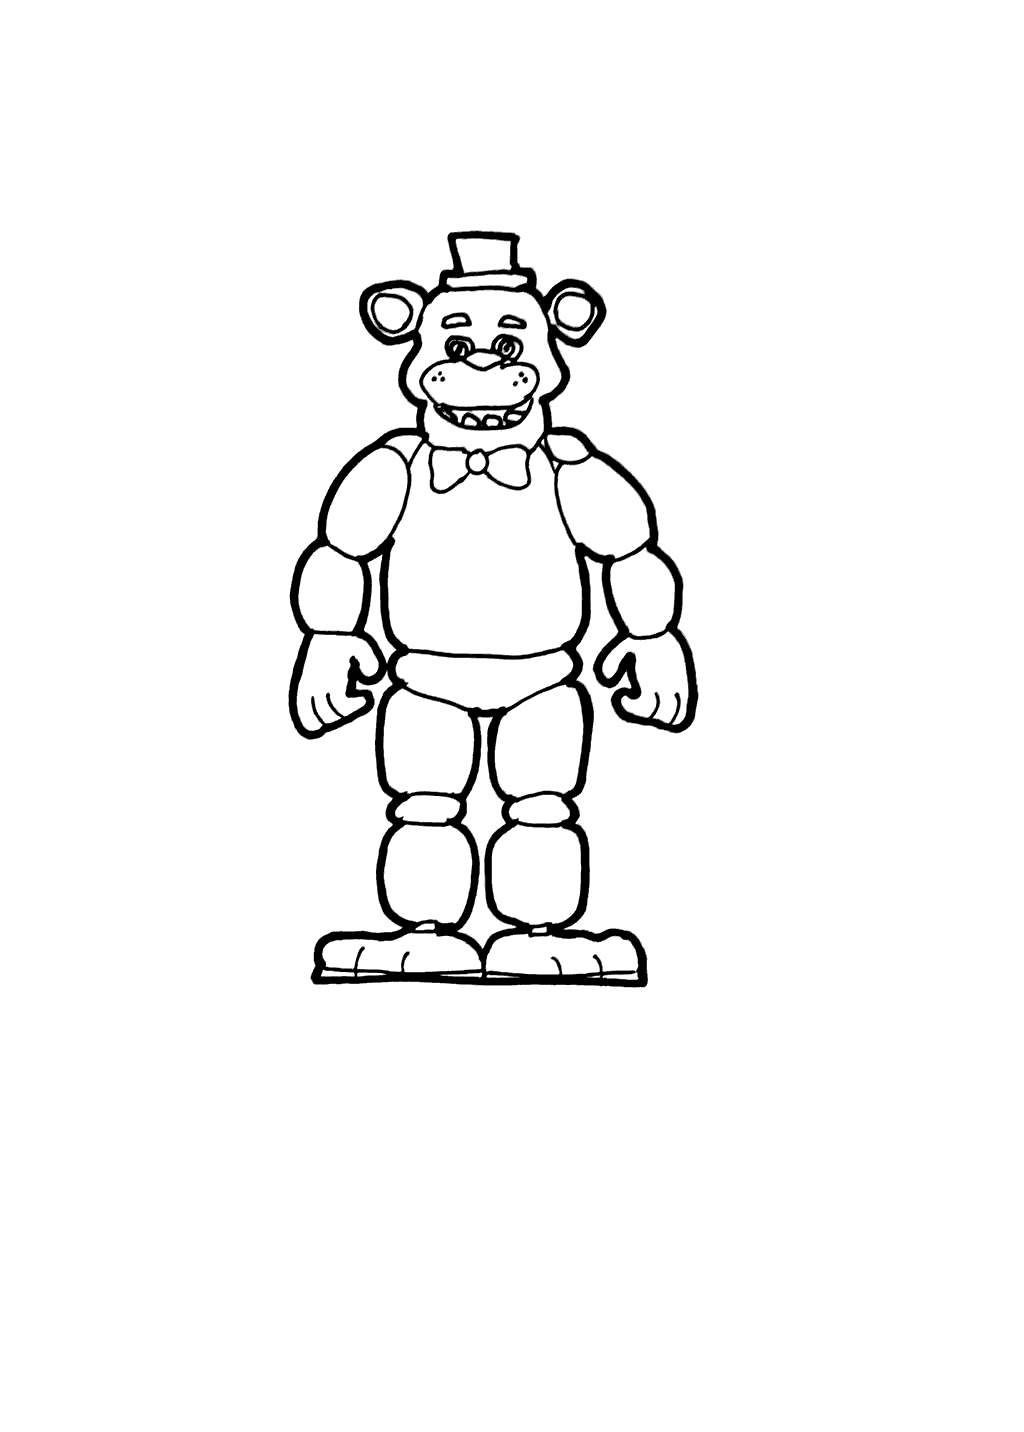 photo regarding Free Printable Five Nights at Freddy's Coloring Pages referred to as 5 Evenings At Freddy Coloring Internet pages Very simple FNAF - Absolutely free